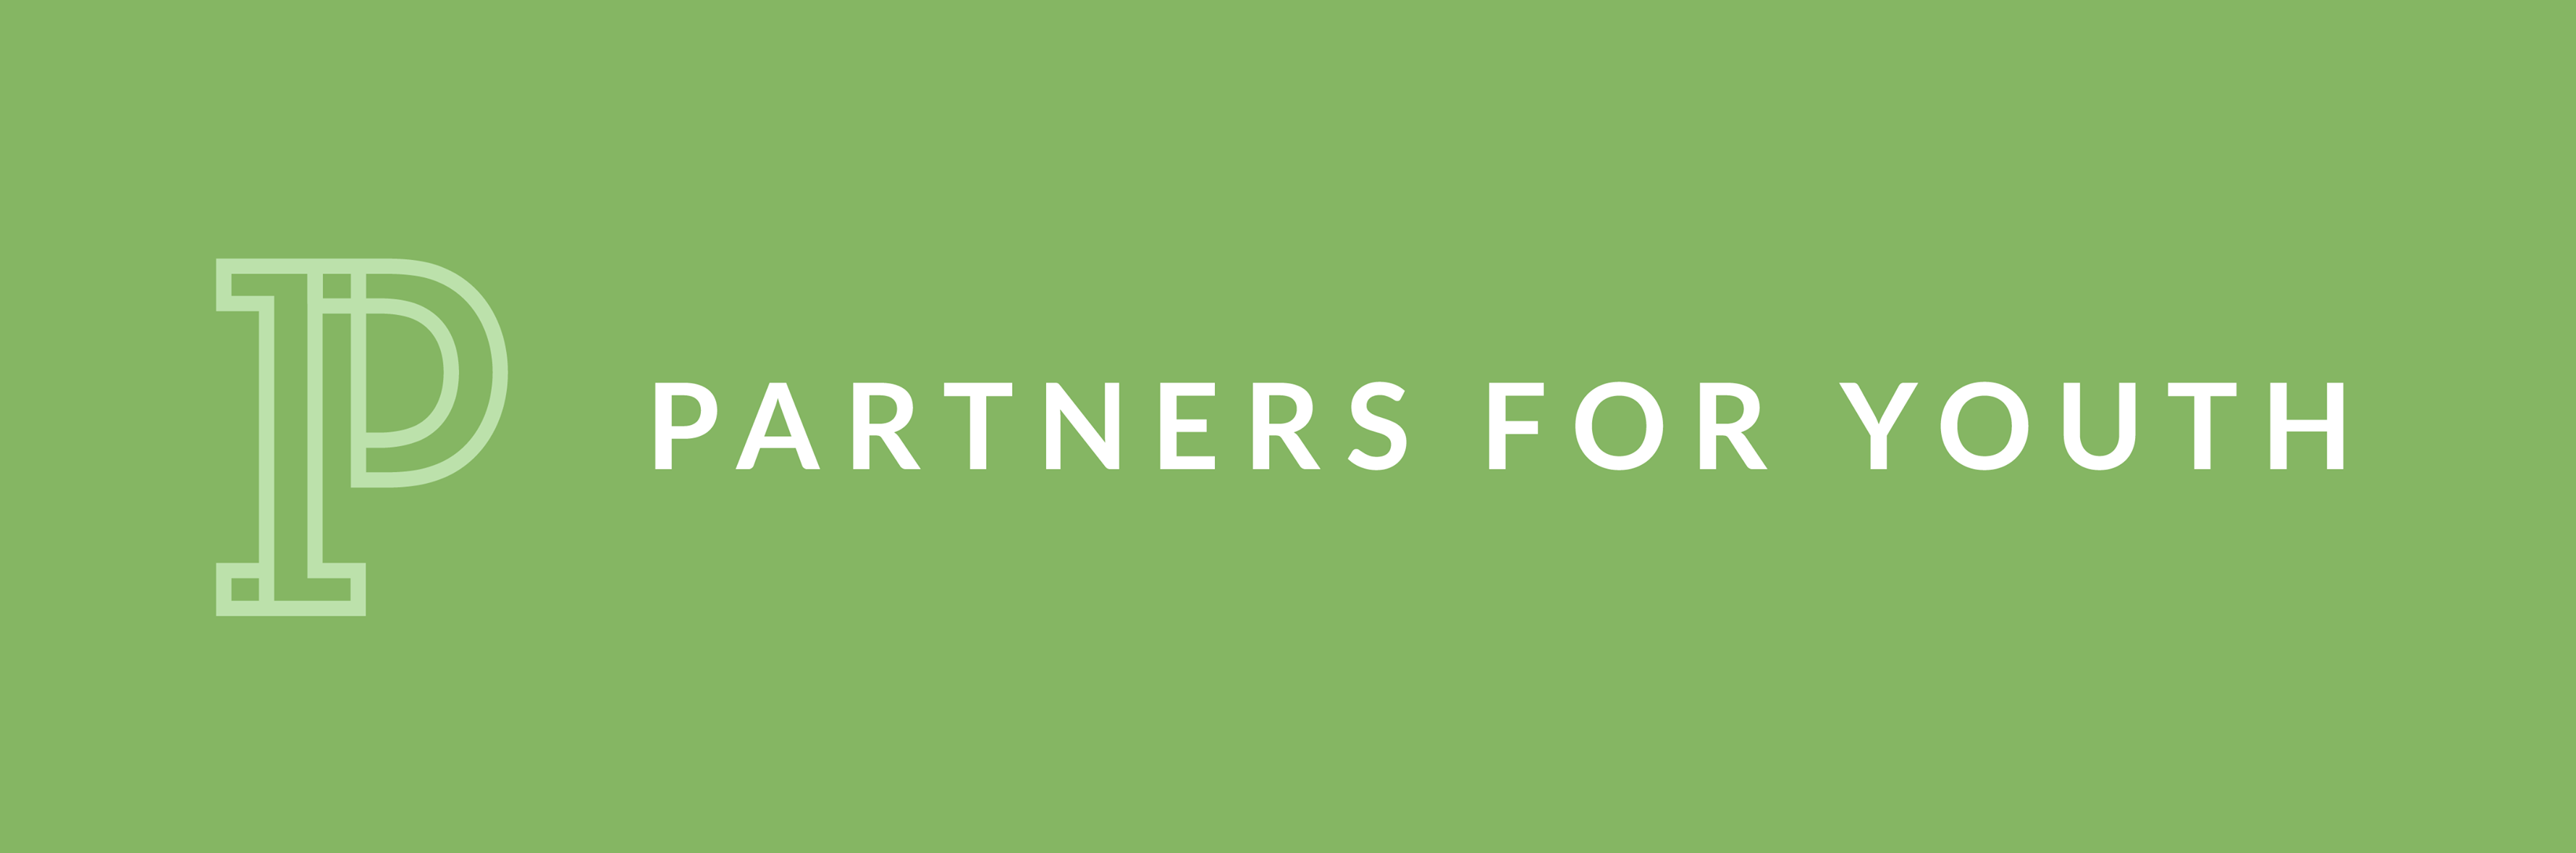 Partners for Youth logo